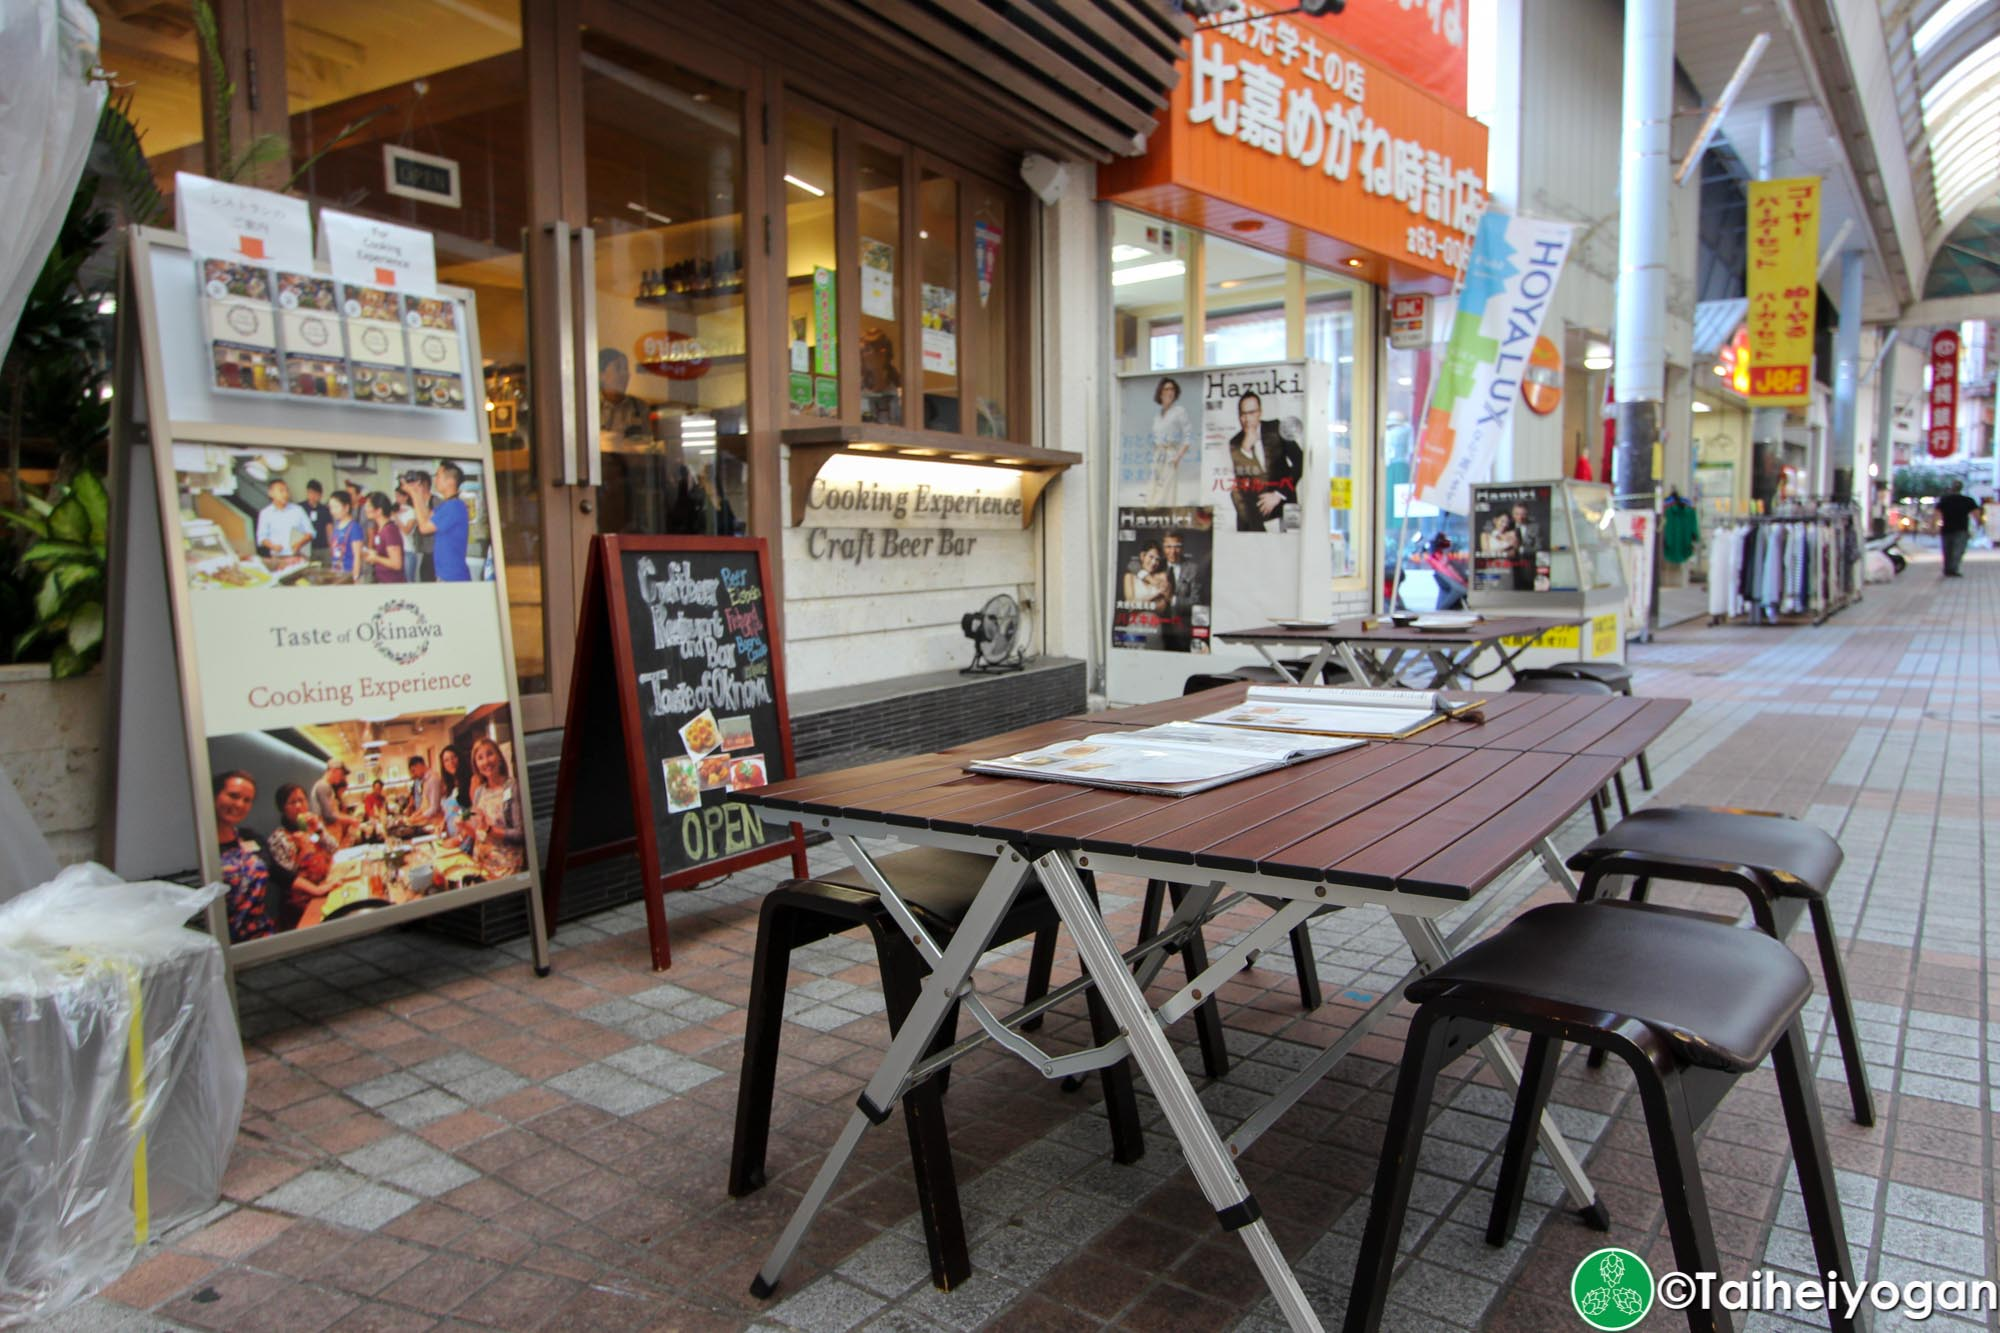 Taste of Okinawa - Outside Seating